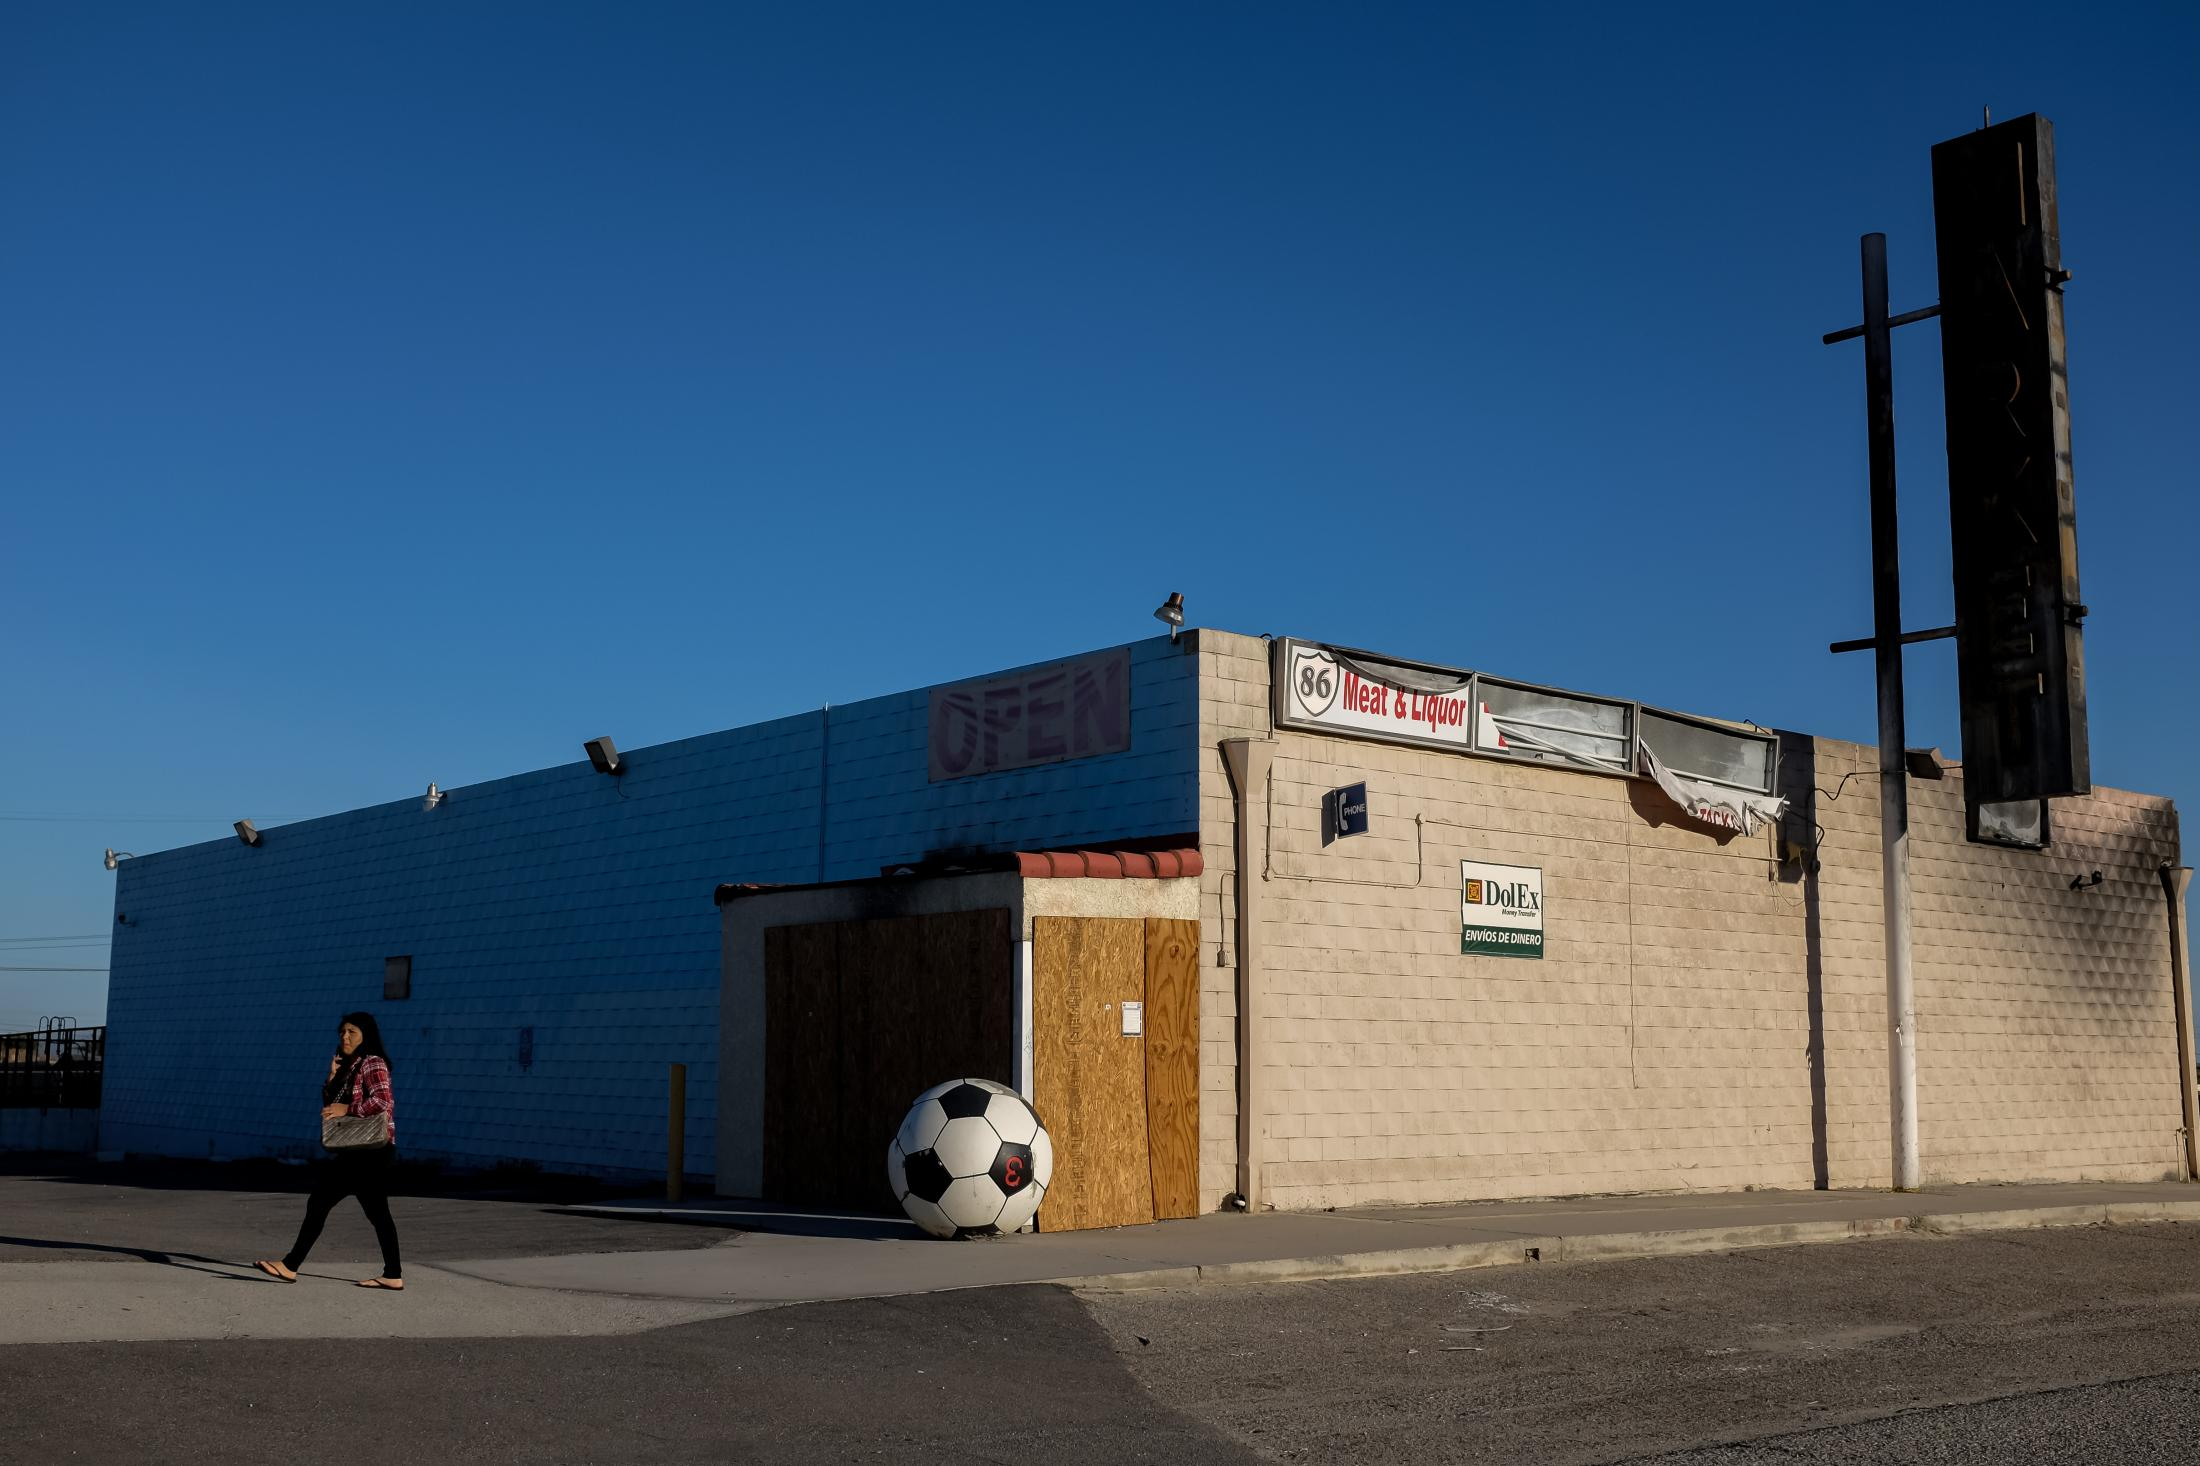 2/19/16-California - A woman walks past an abandoned sports supplies store in Niland, CA, the closest town near Slab City.